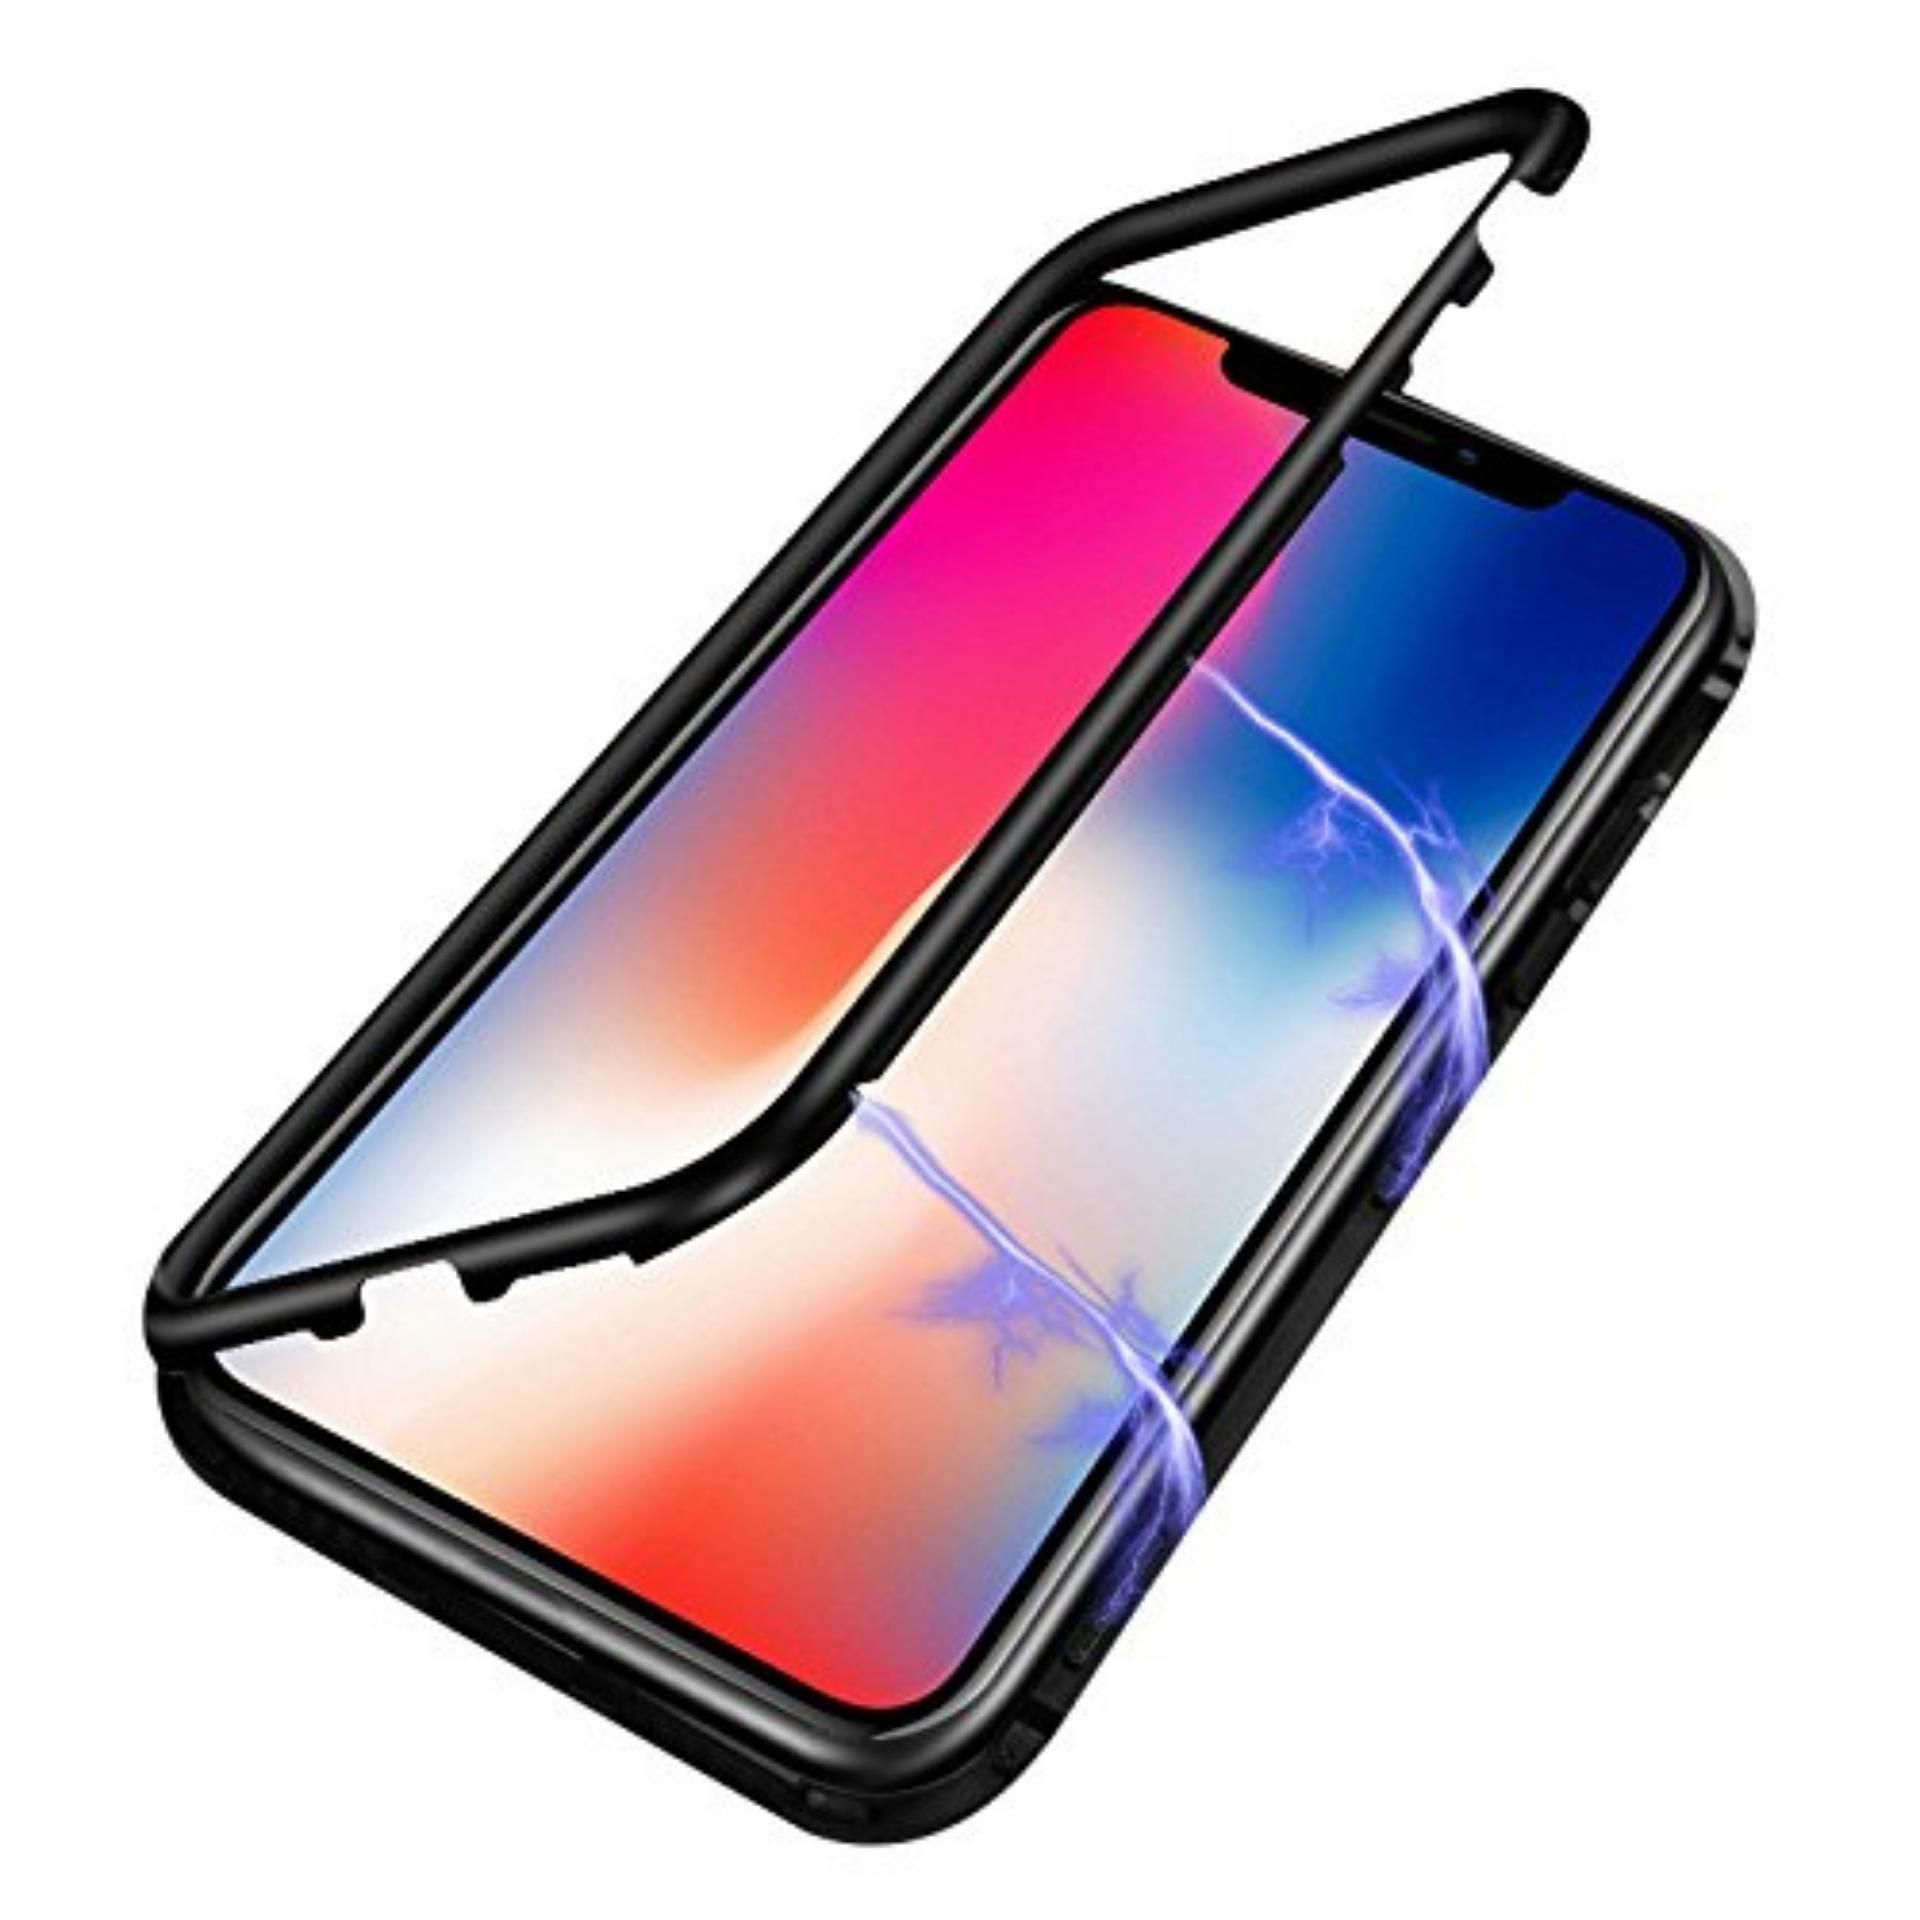 Harga Promo Tomica Reguler Datsun Go Silver Limited Rp 46700 Blue Lollypop Magnetic Absorption Glass Case Apple Iphone X Black Hitam Metal Ultra Flip Cover 360 Prote